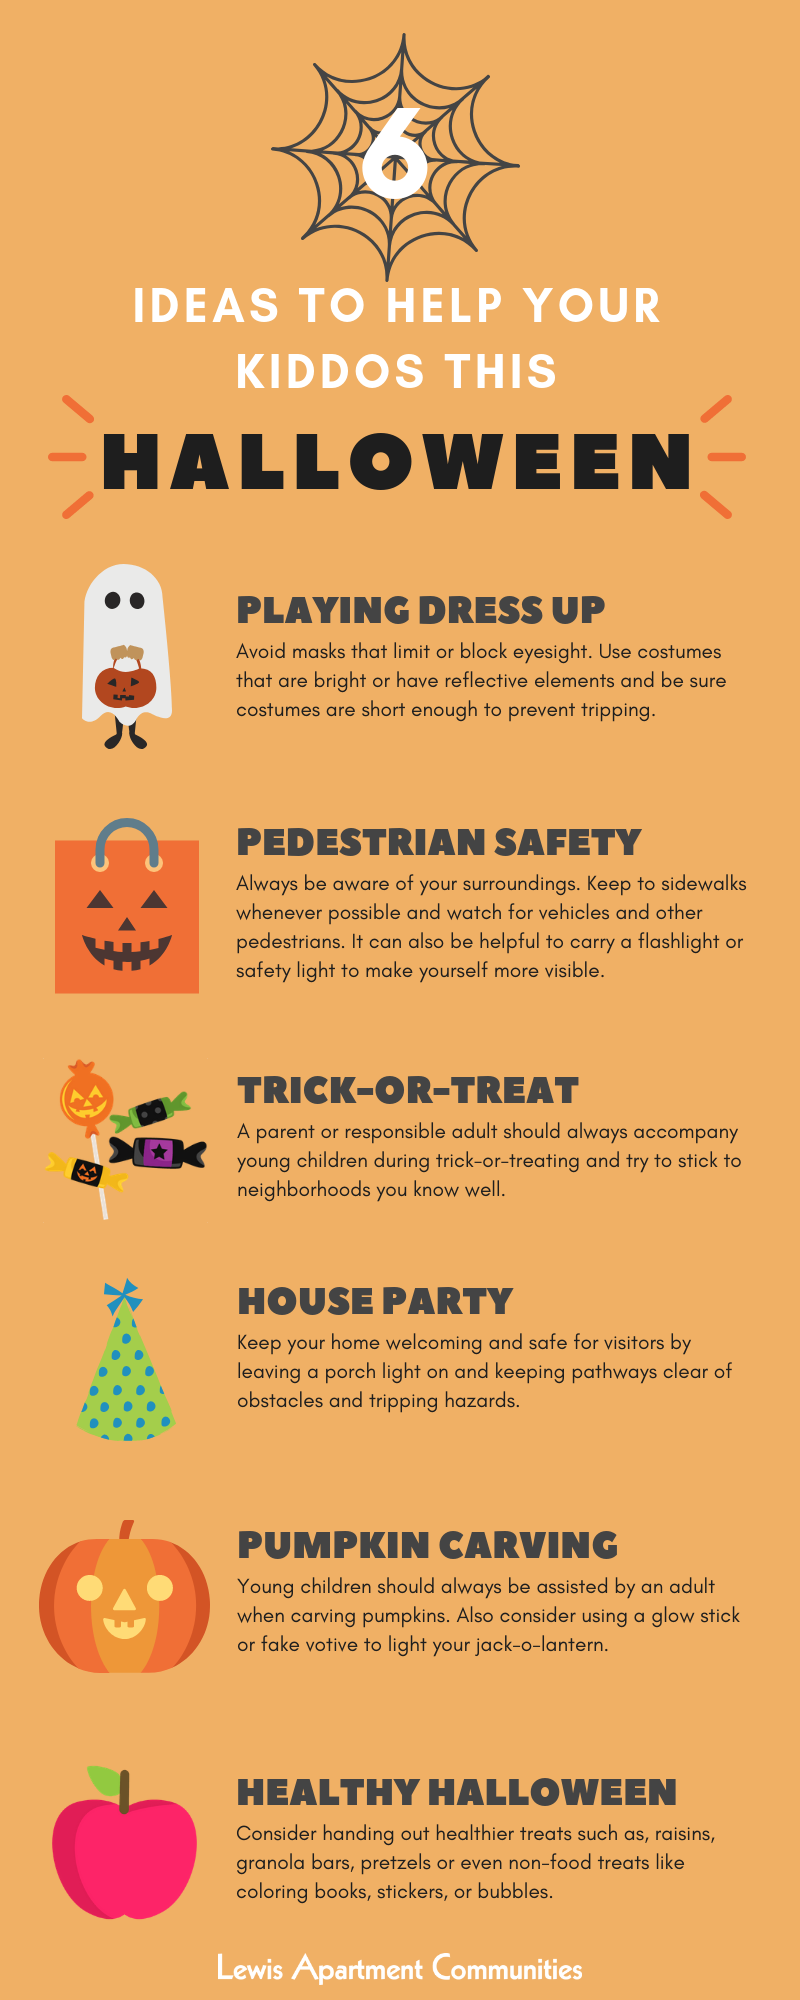 6 Ideas to Help your Kiddos this Halloween